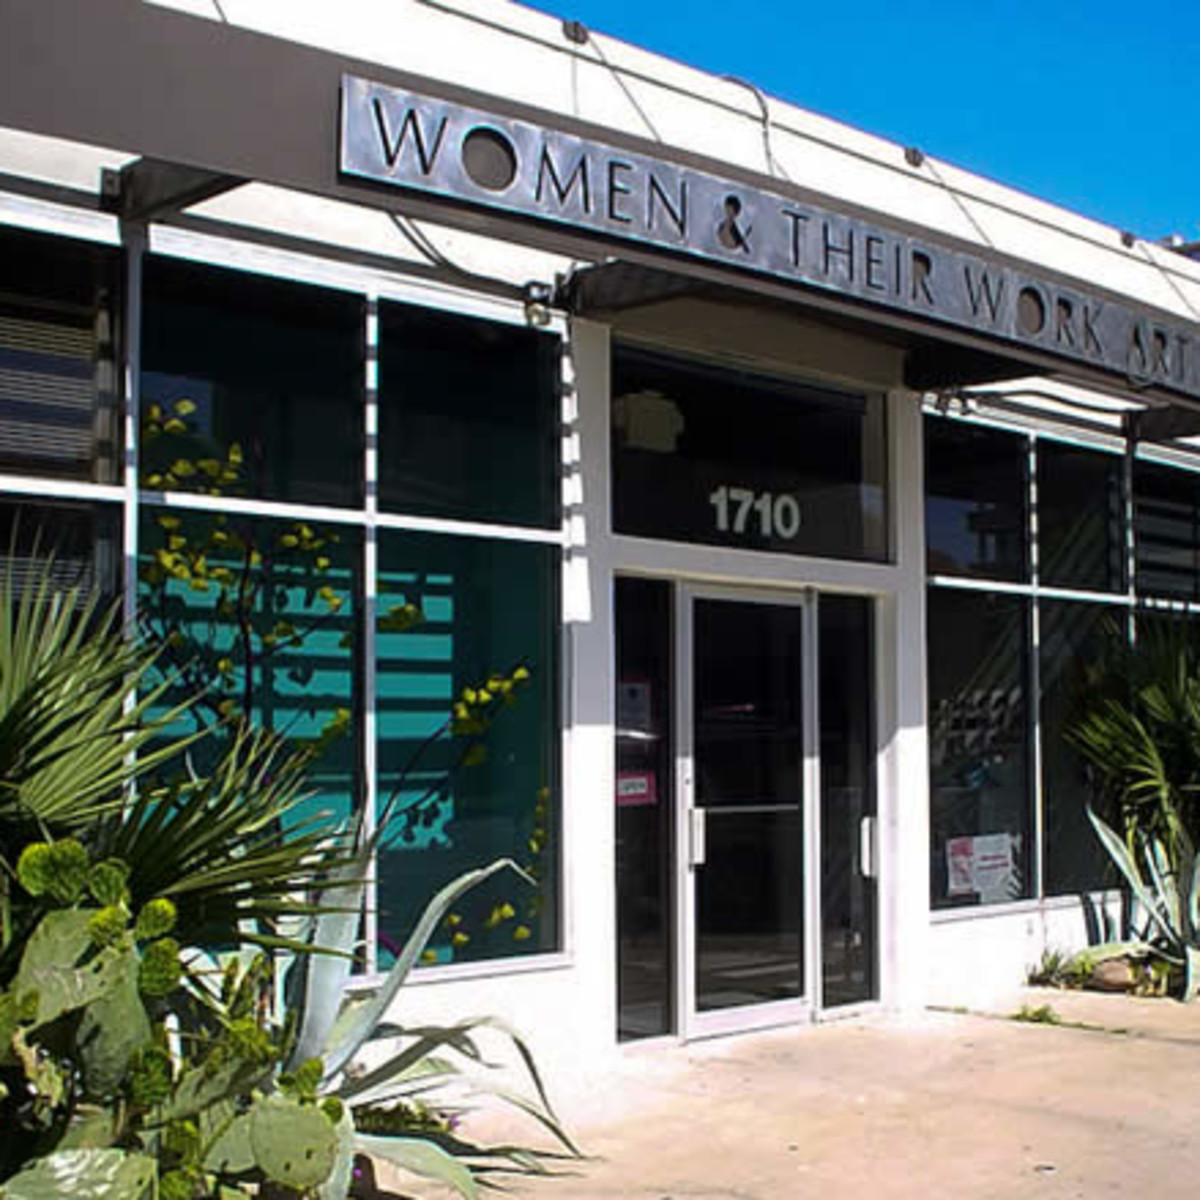 Austin photo: Places_Arts_Women_Their_Work_Exterior